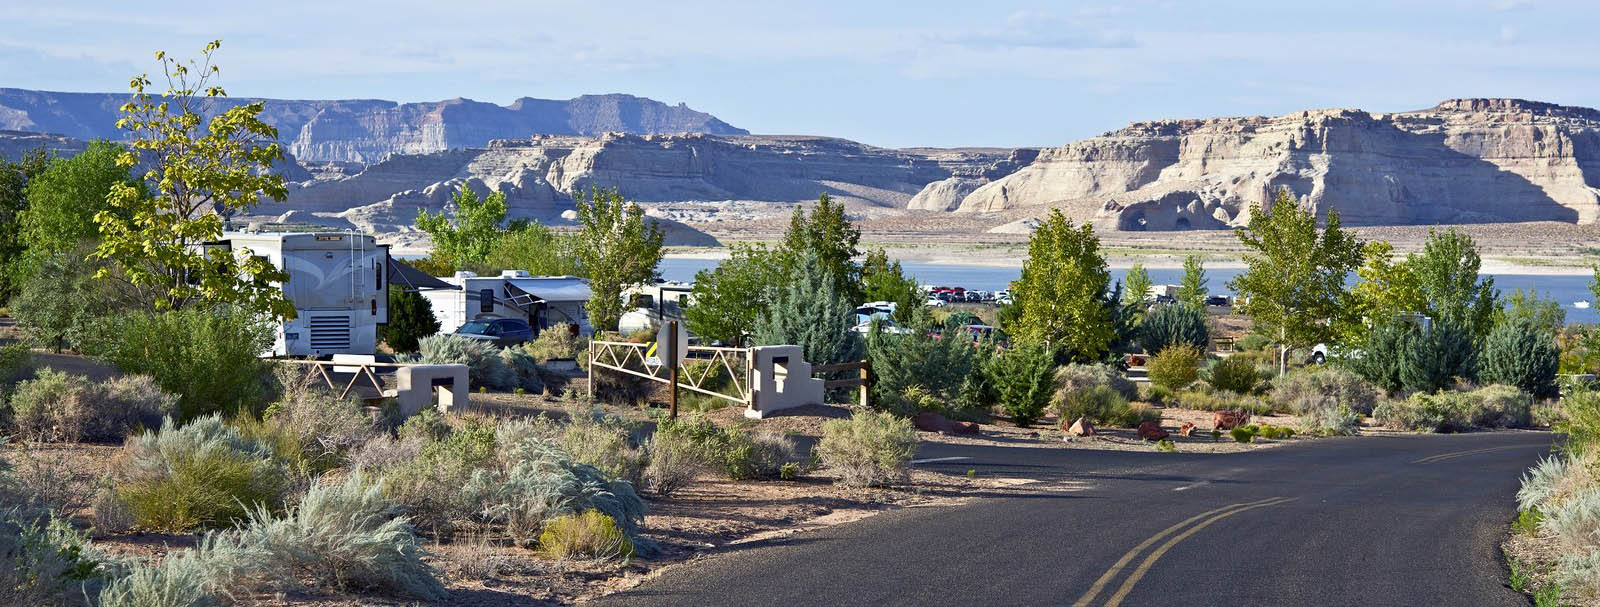 37 Best Rv Camping Lakes In The United States Rv Scout